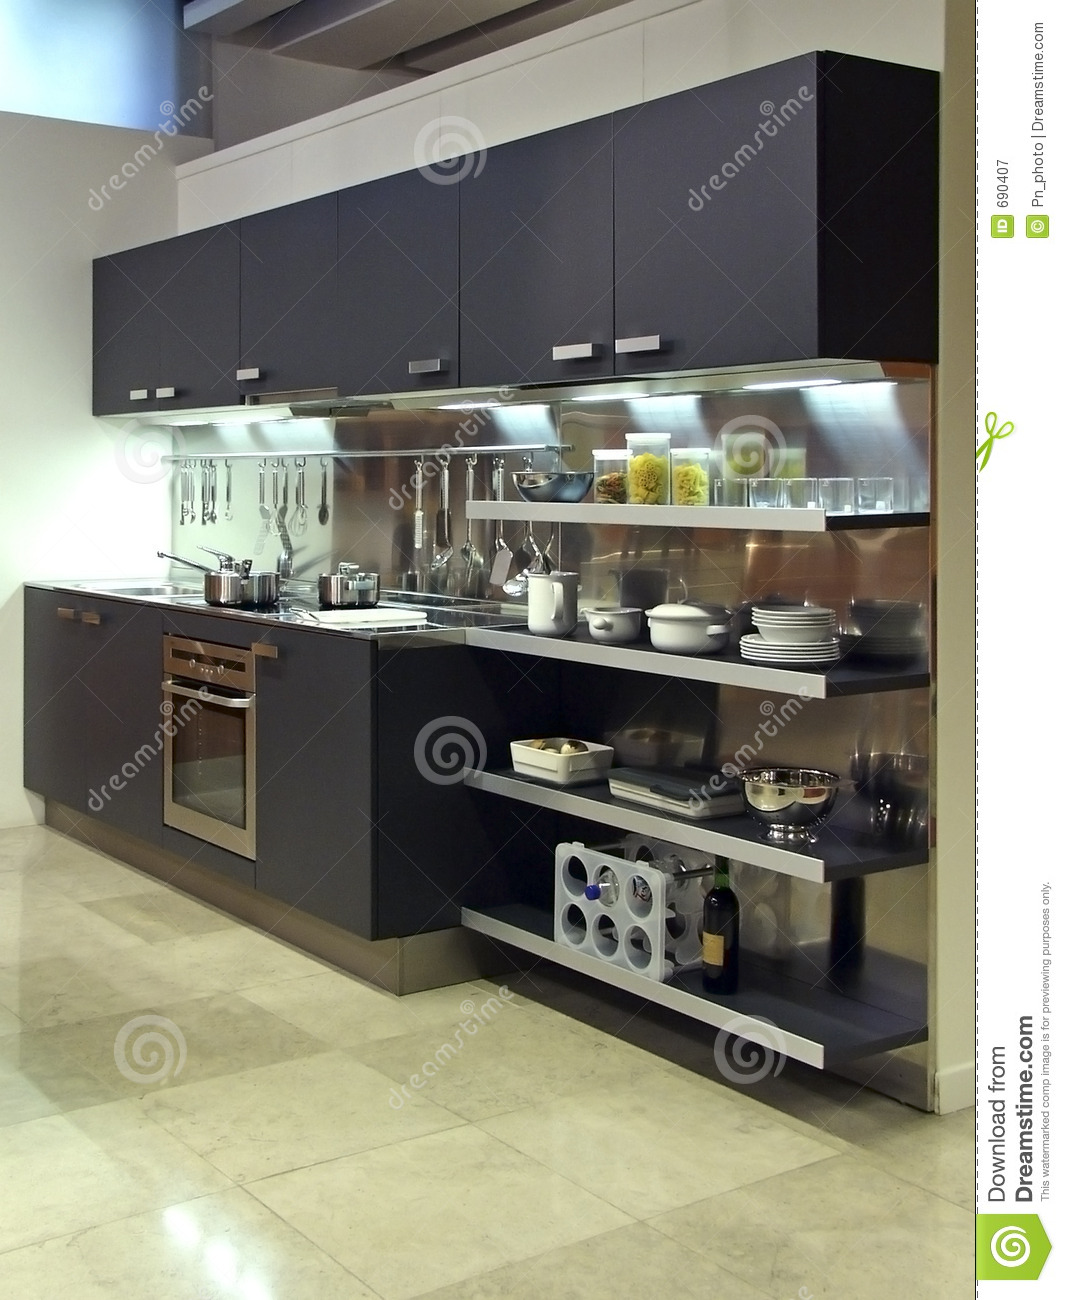 Contemporary Kitchen Vs Modern Kitchen: Modern Kitchen Architecture 03 Stock Image